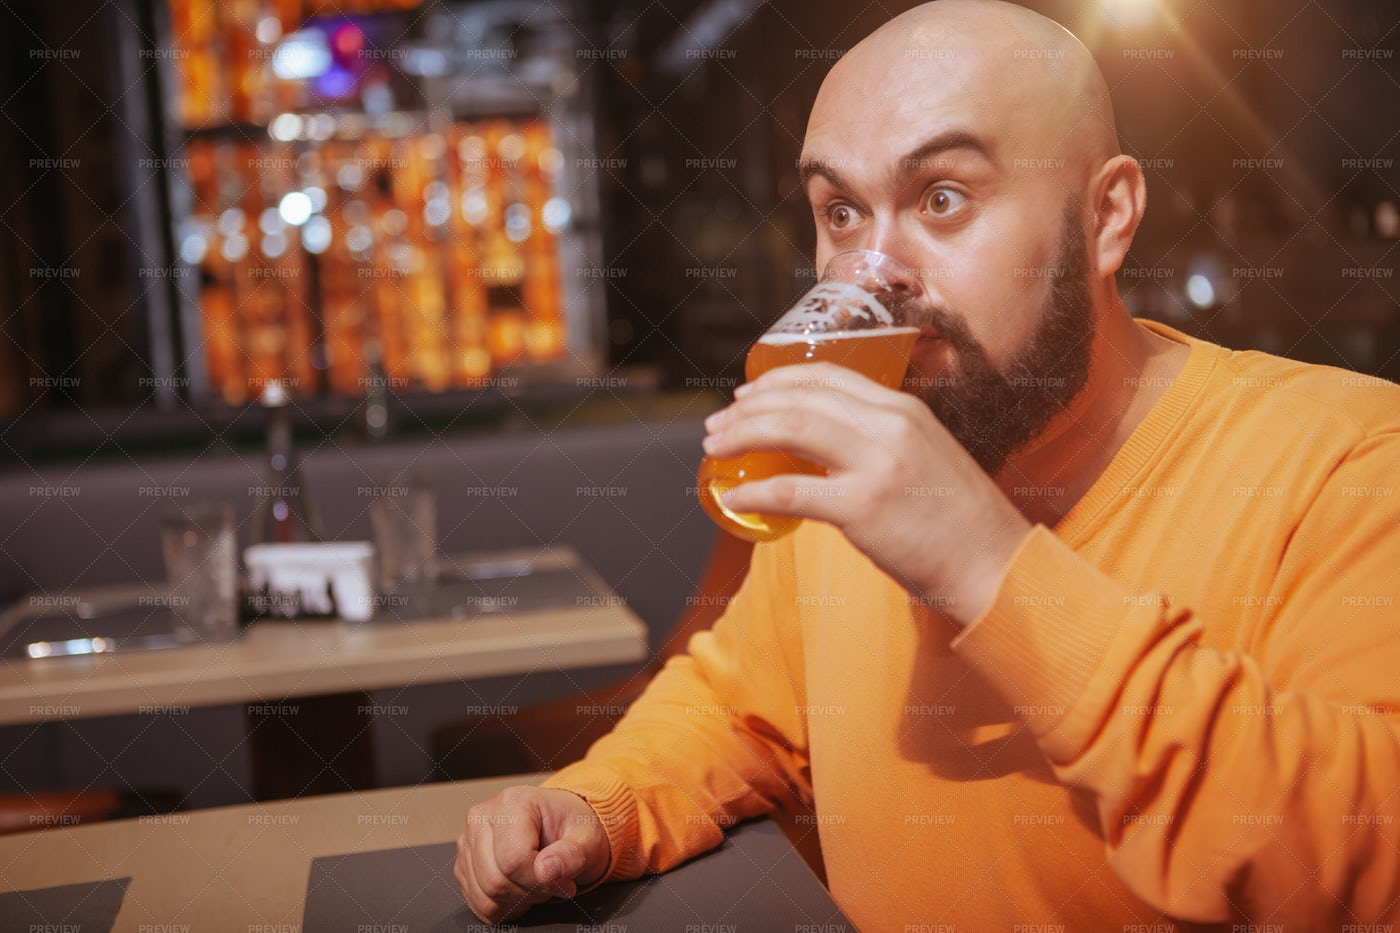 Tasting A Good Beer: Stock Photos